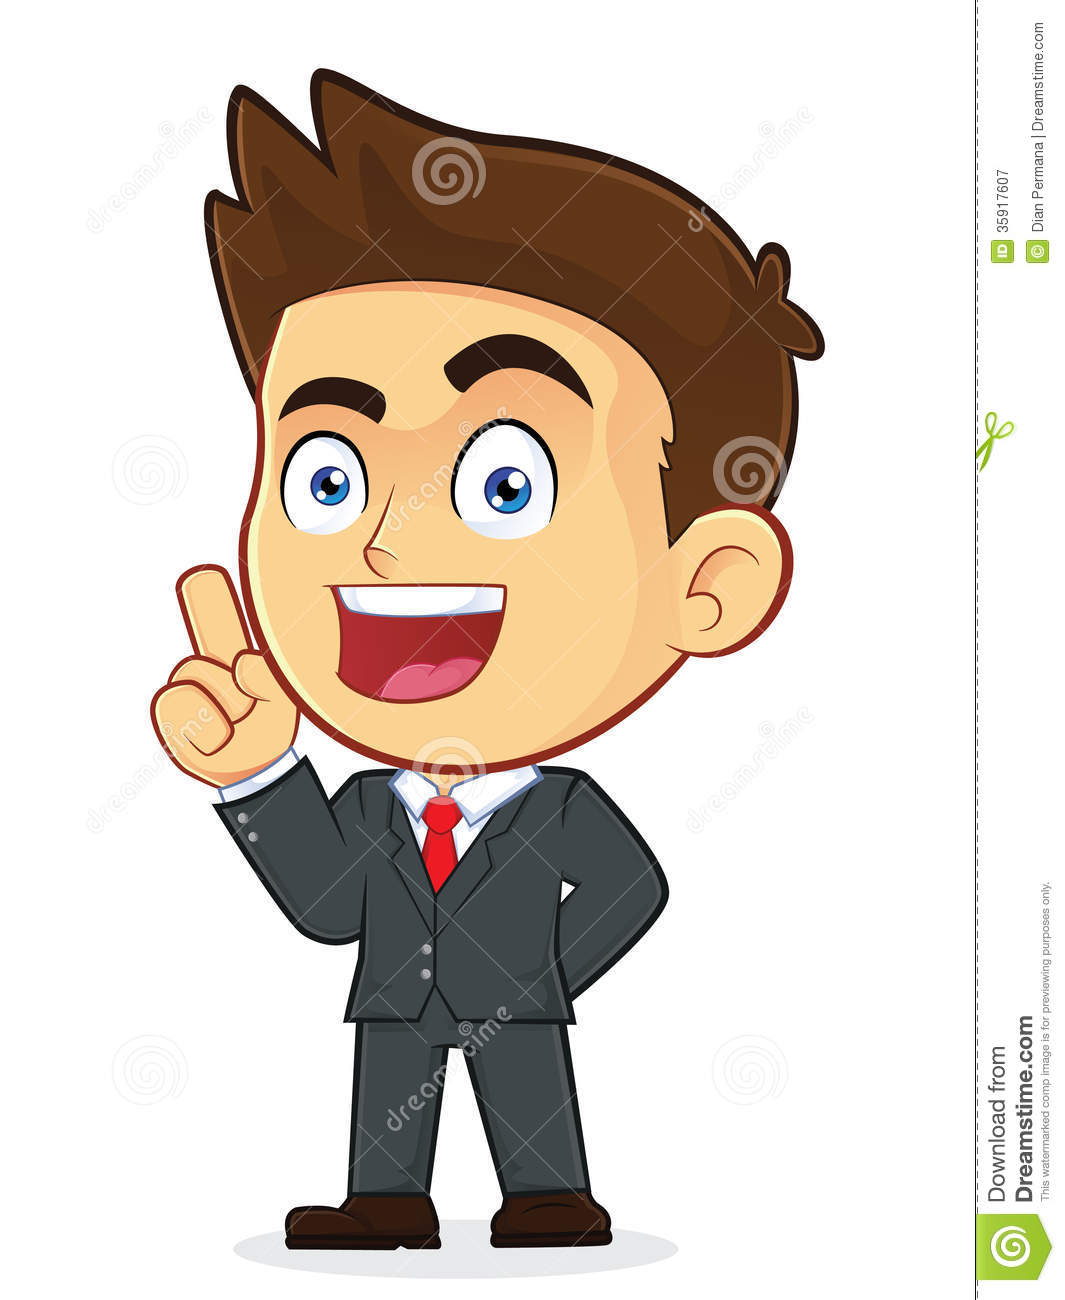 Cartoon Characters Male : Businessman pointing upwards royalty free stock